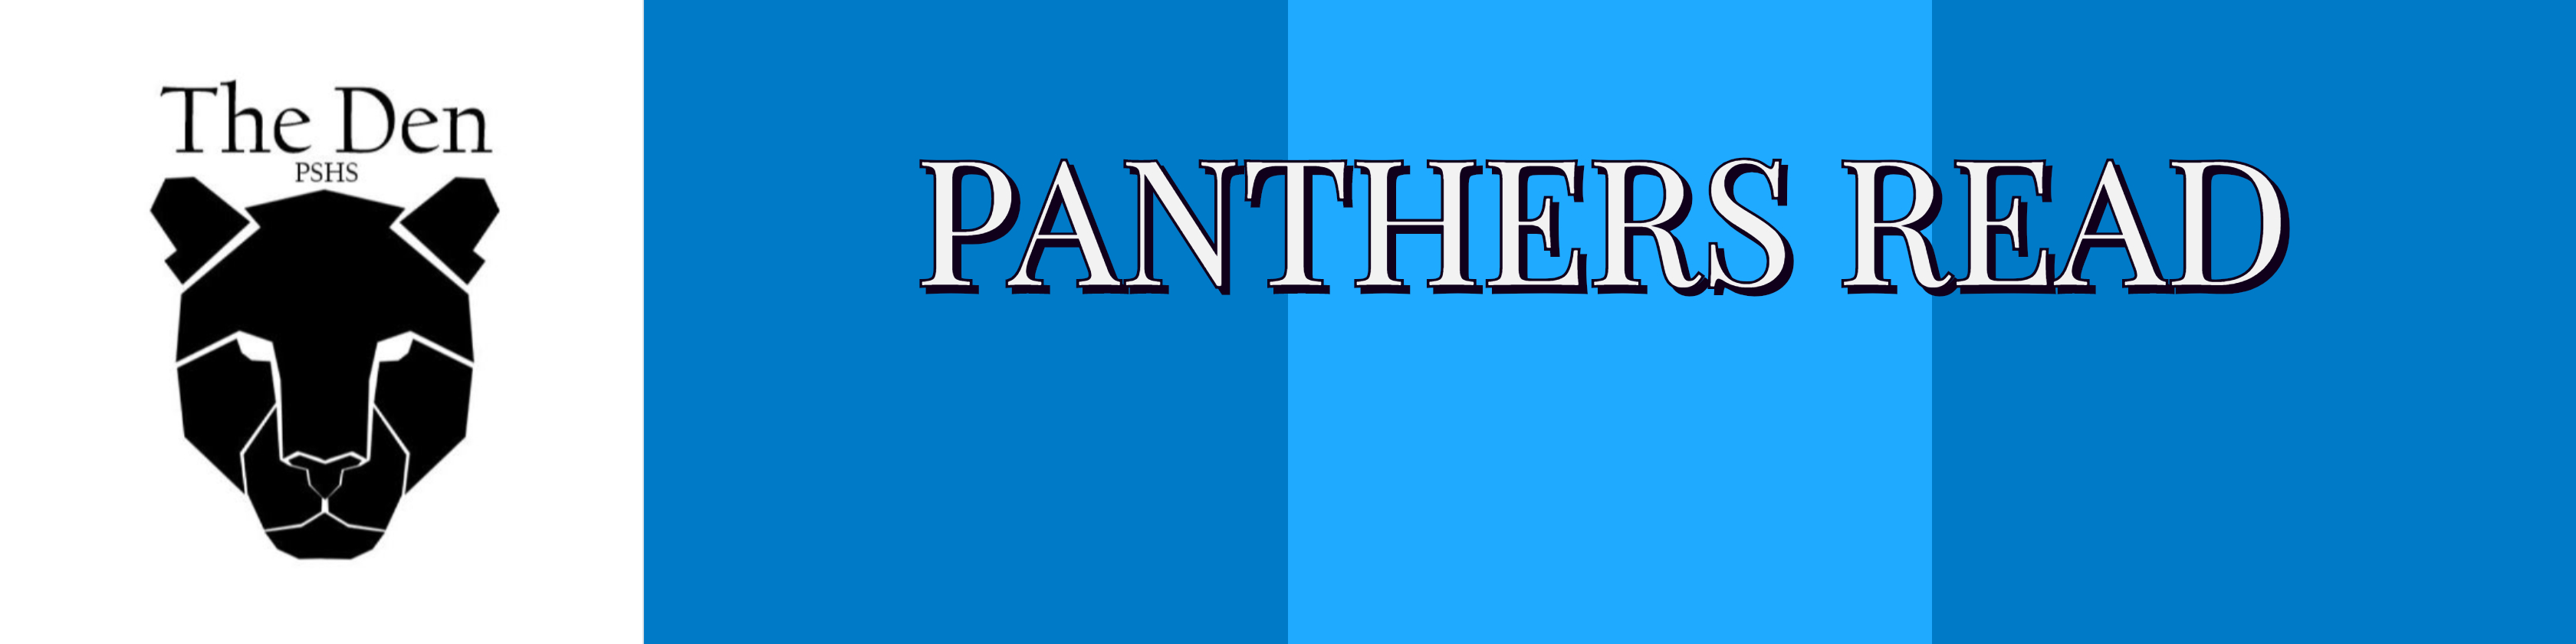 The Den Library, panther image, Panthers Read